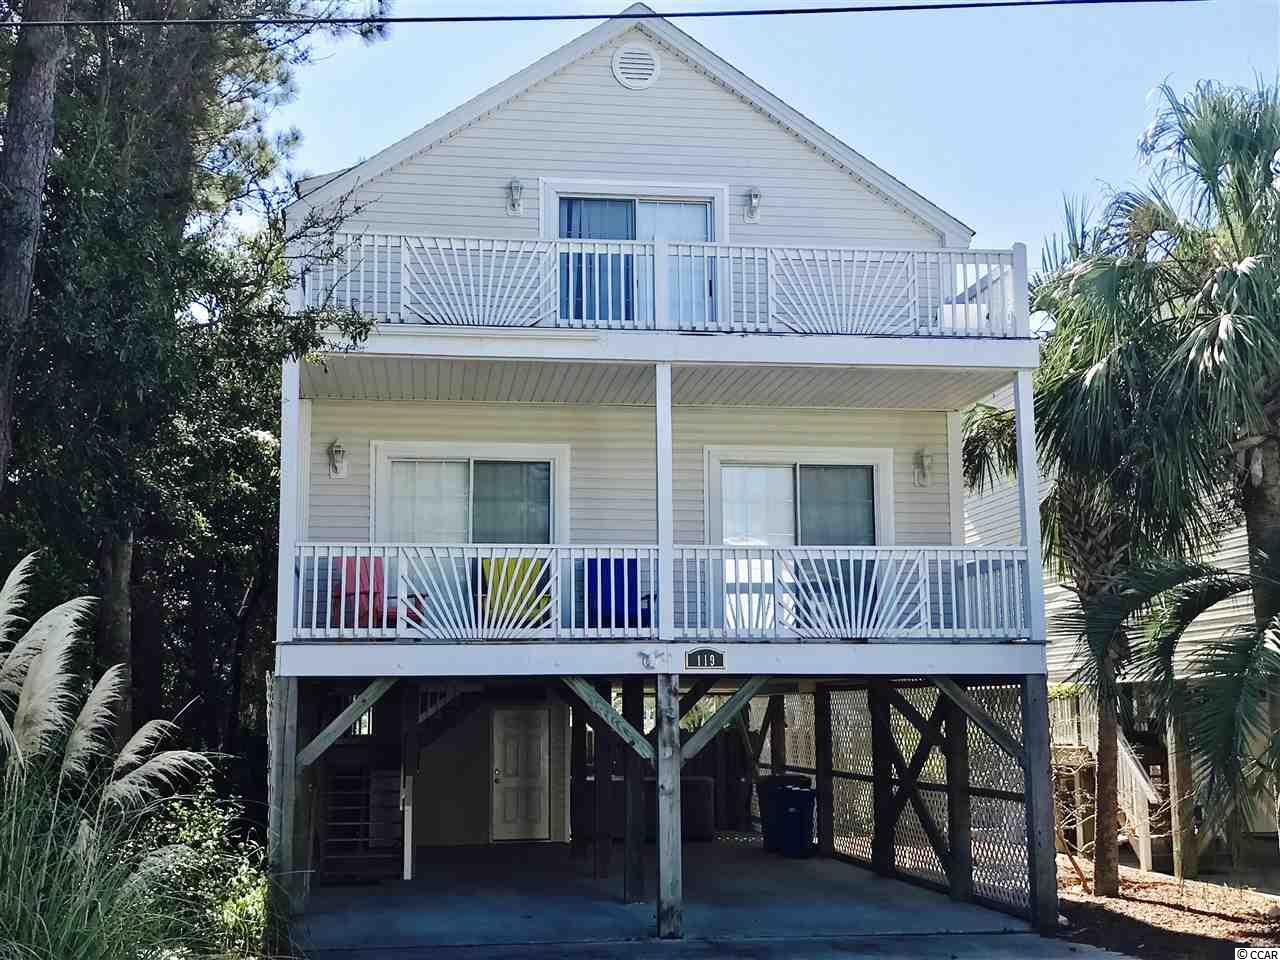 Single Family Home for Sale at 119 A S 16th Avenue 119 A S 16th Avenue Surfside Beach, South Carolina 29575 United States